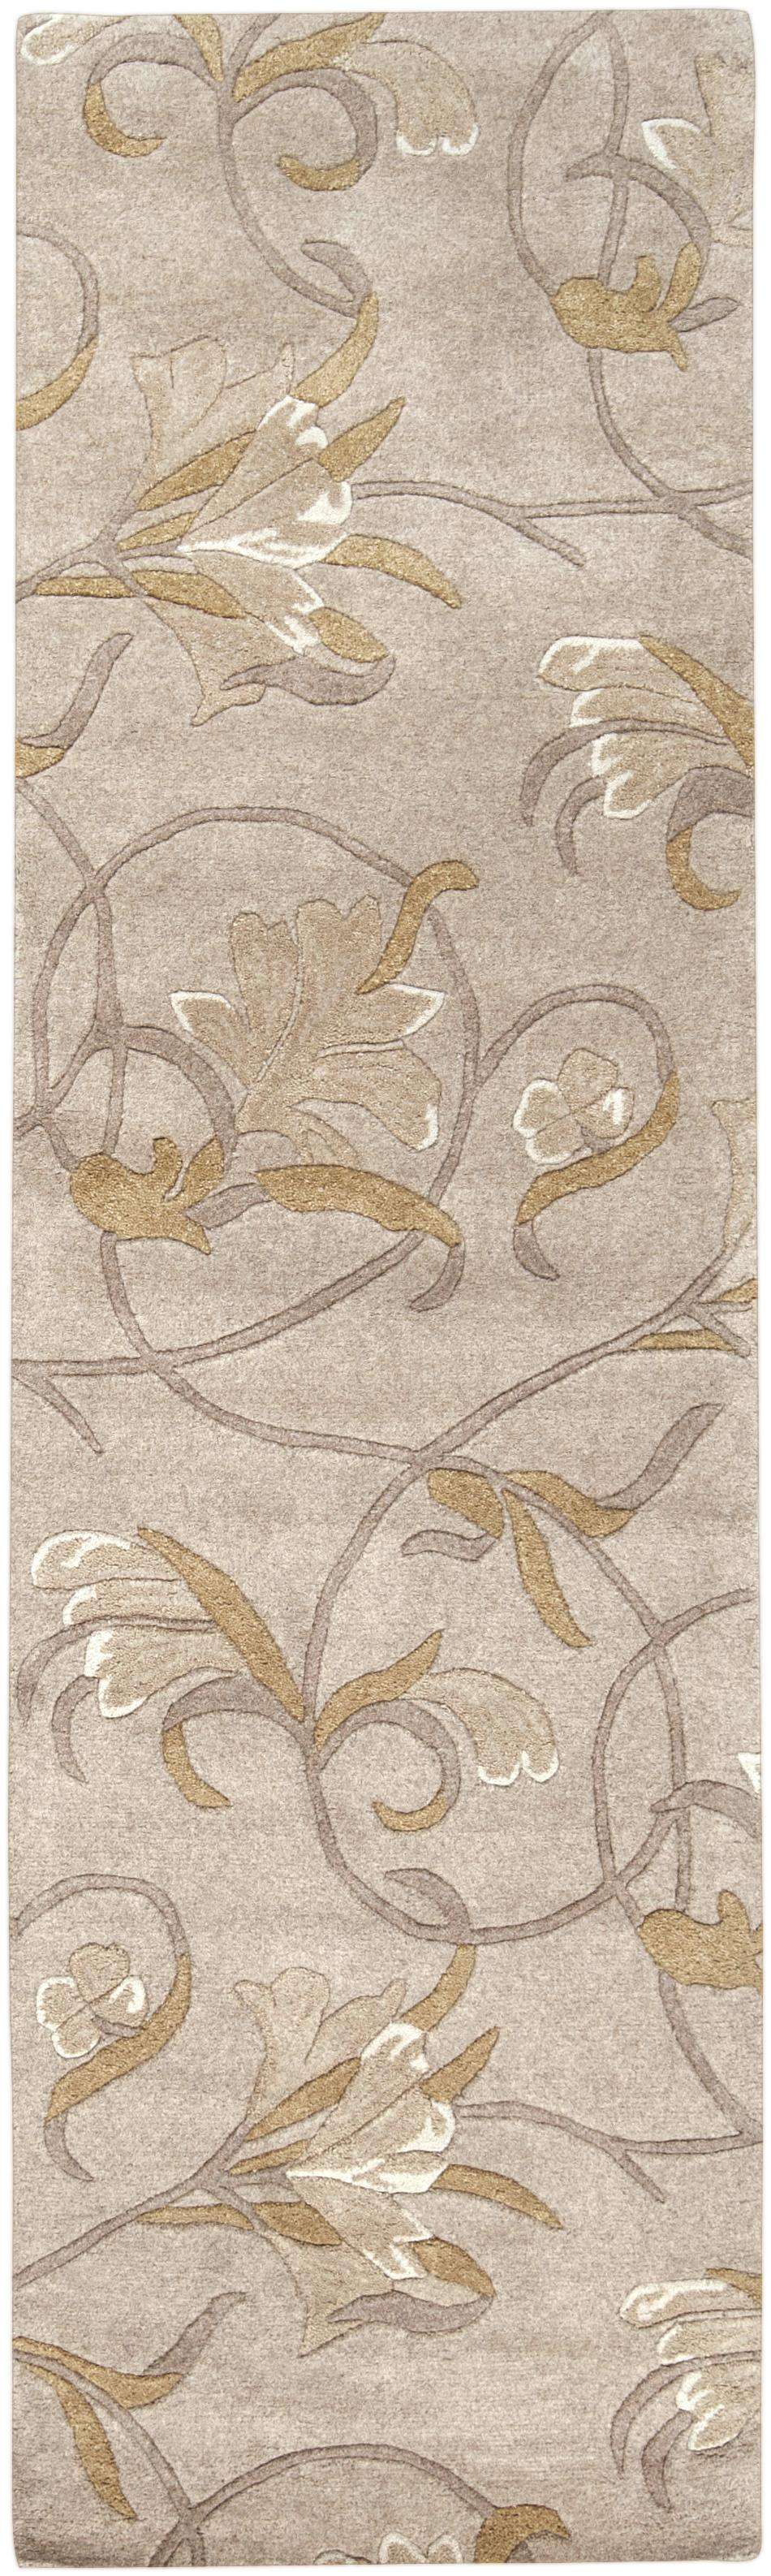 "Surya Goa 2'6"" x 8' - Item Number: G44-268"